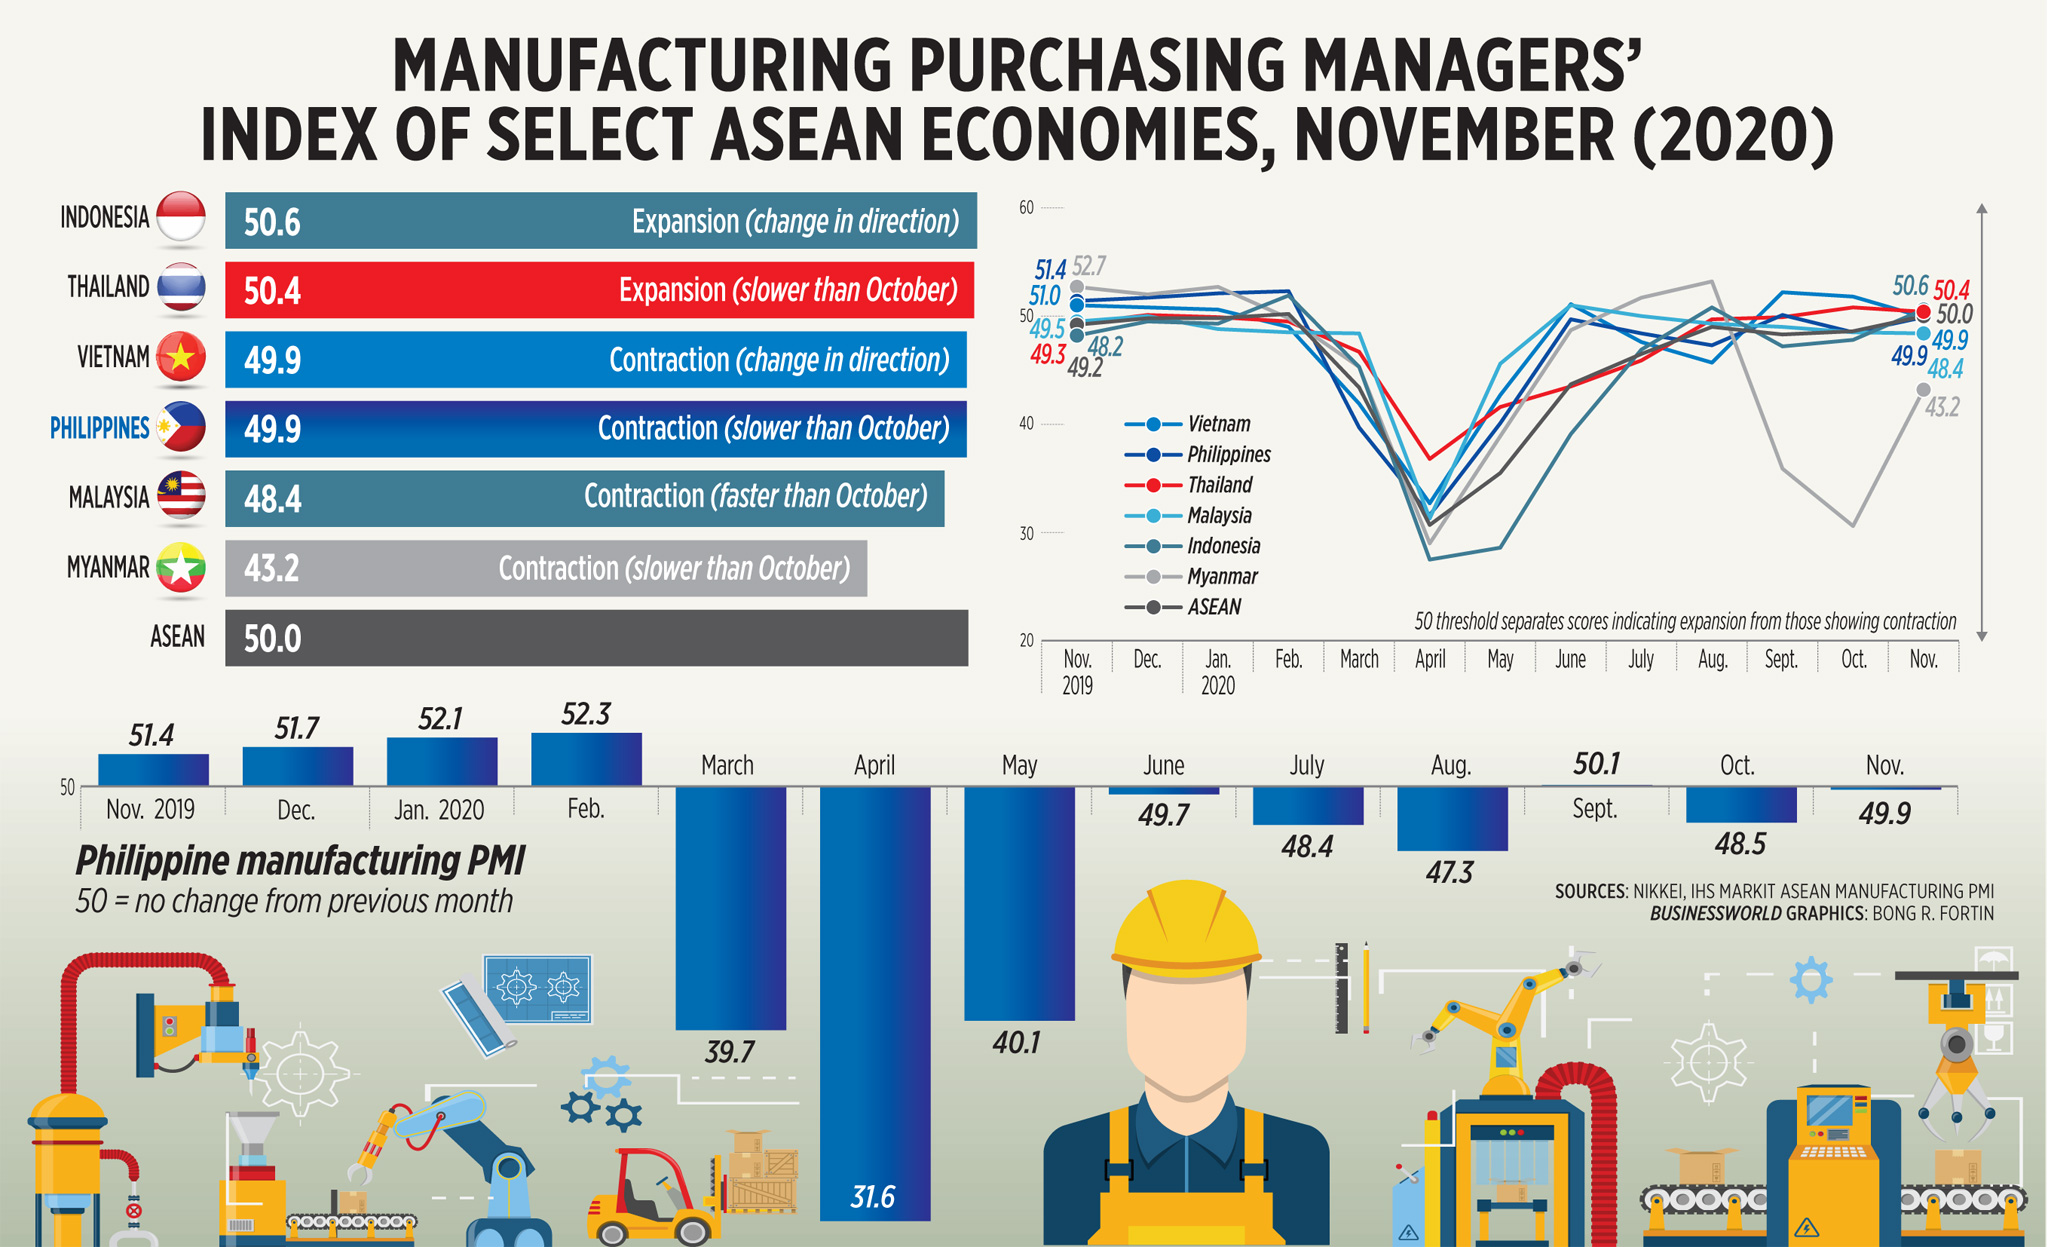 Manufacturing purchasing managers' index of select ASEAN economies, November (2020)